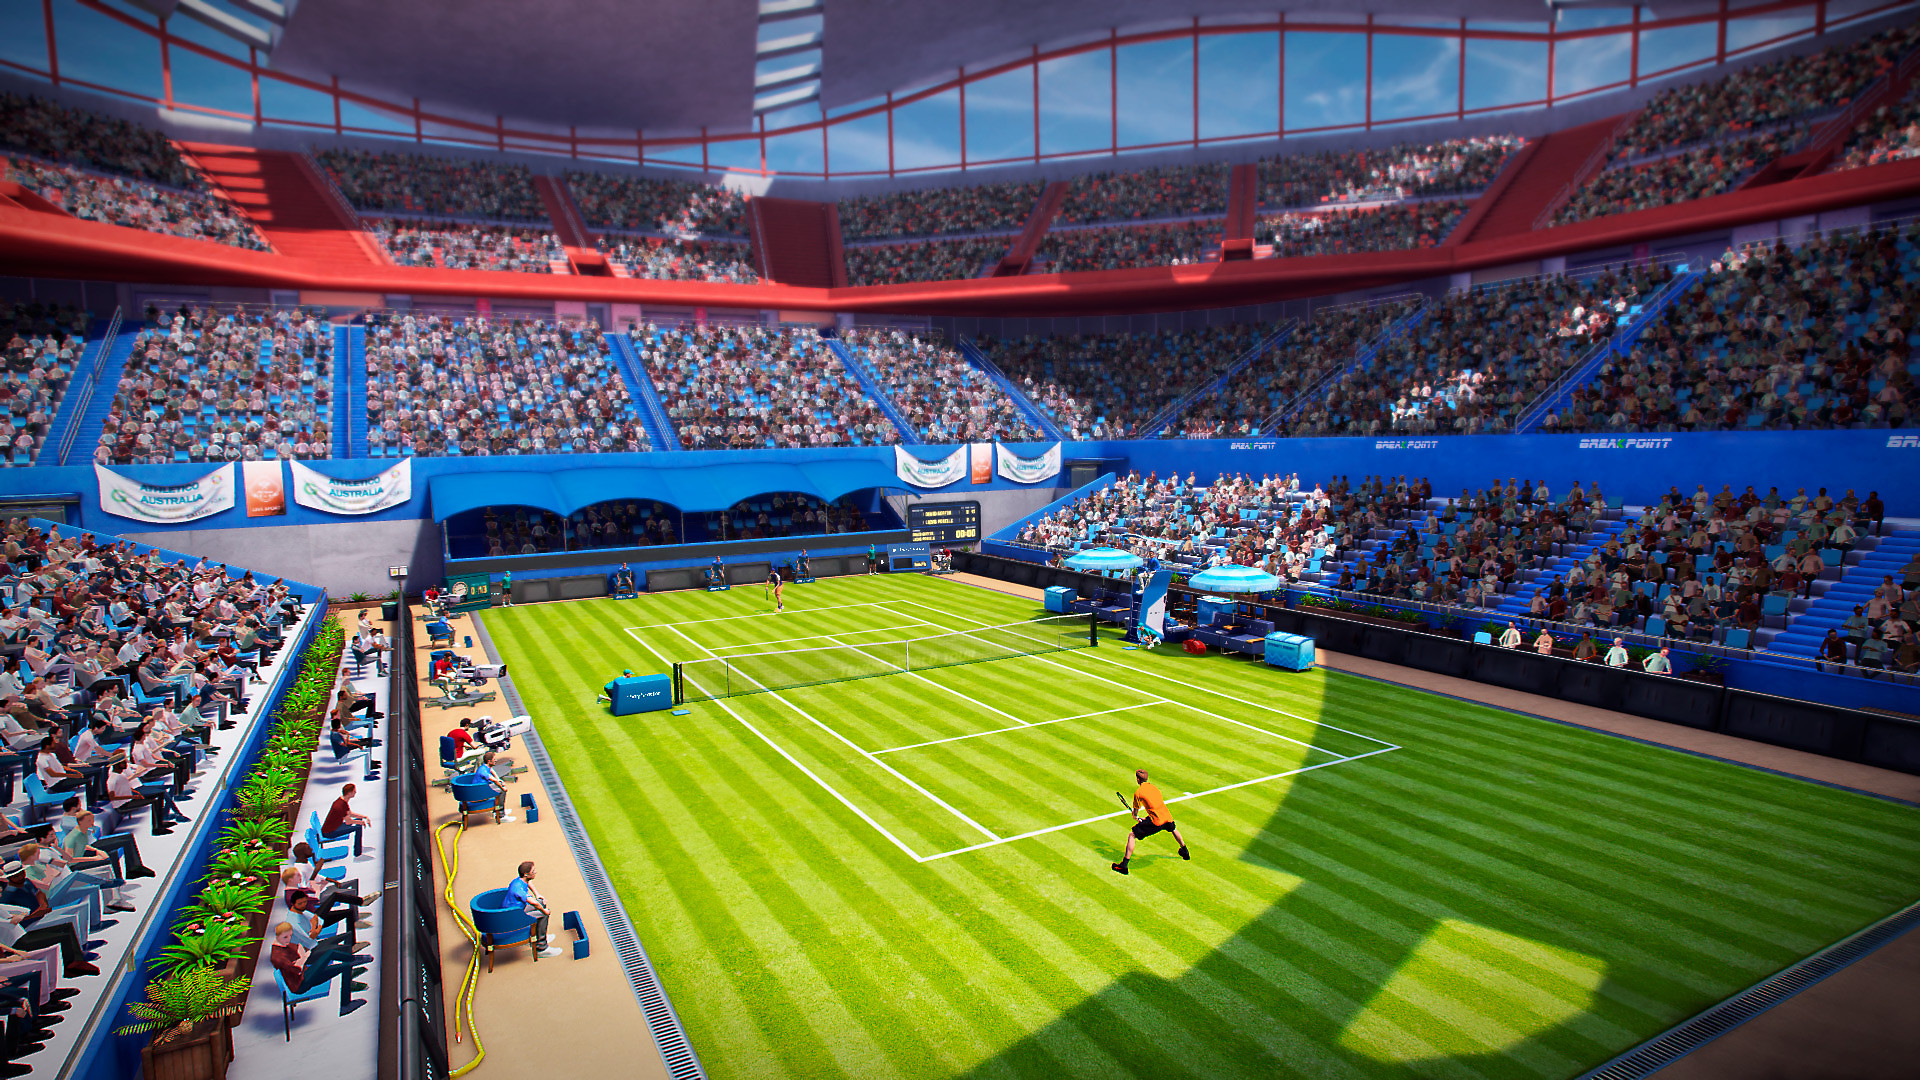 Overview of the Tennis Court